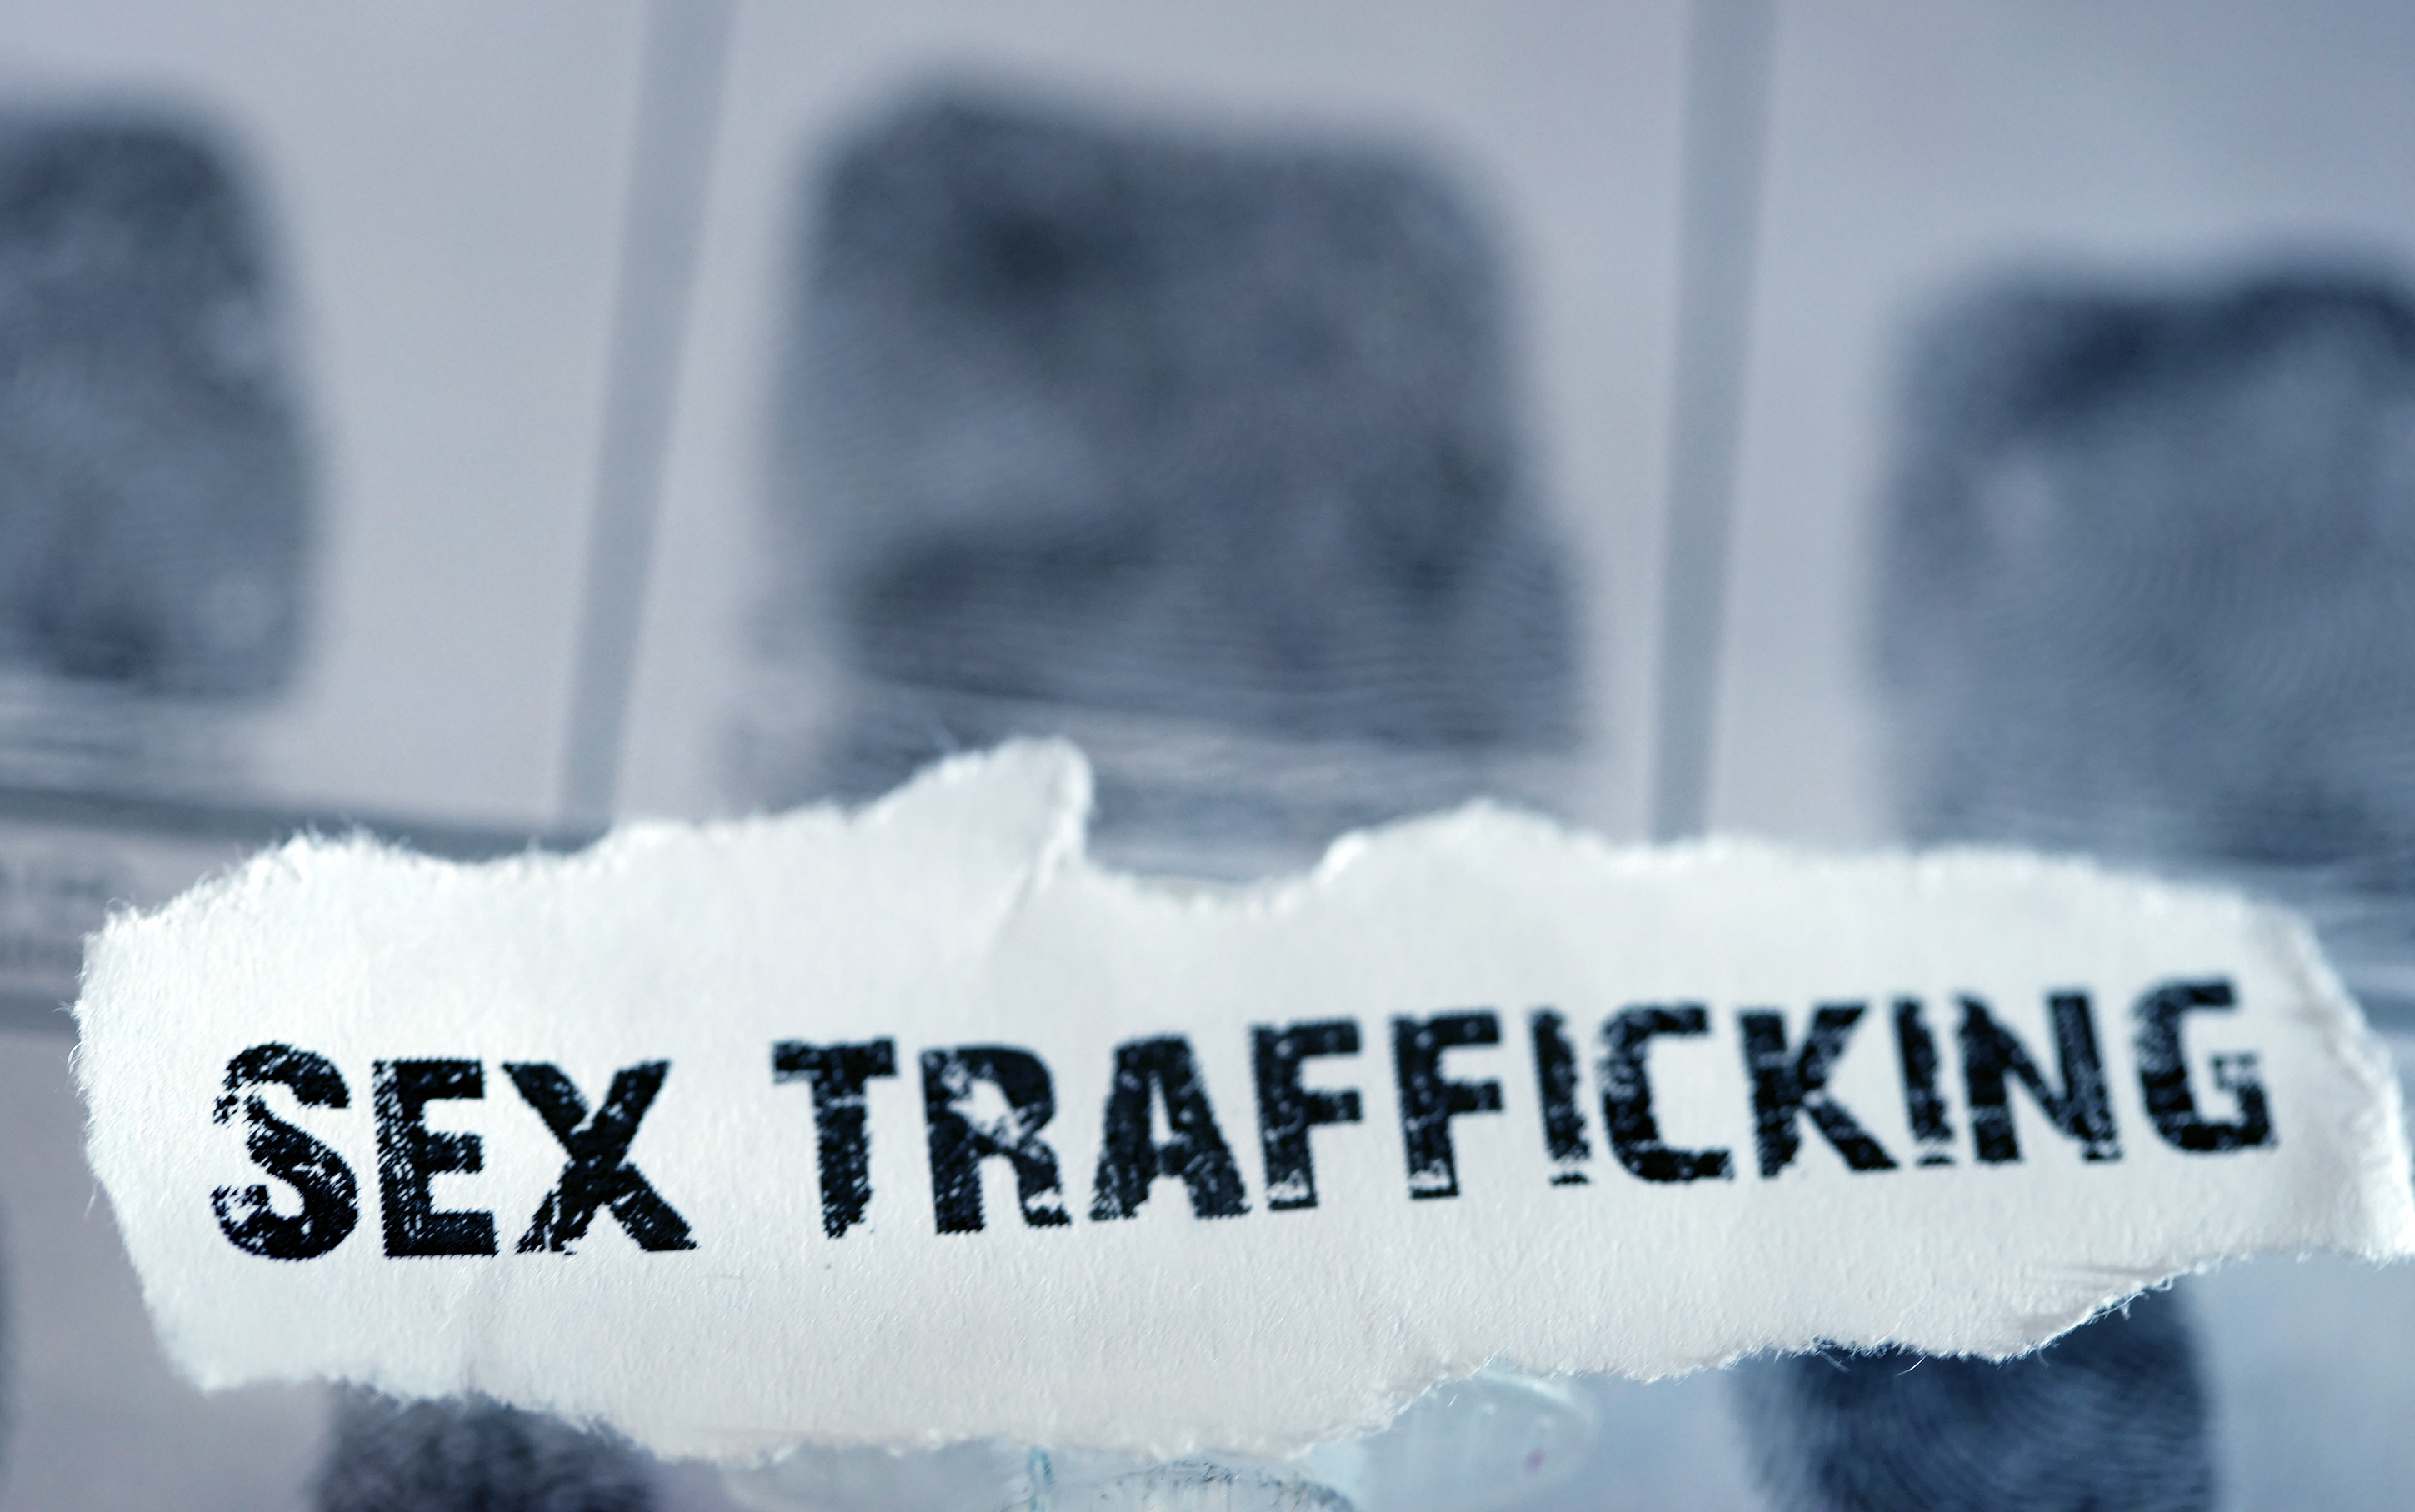 LA County Votes to Establish Local Ordinance to Support Crackdown on Human Trafficking